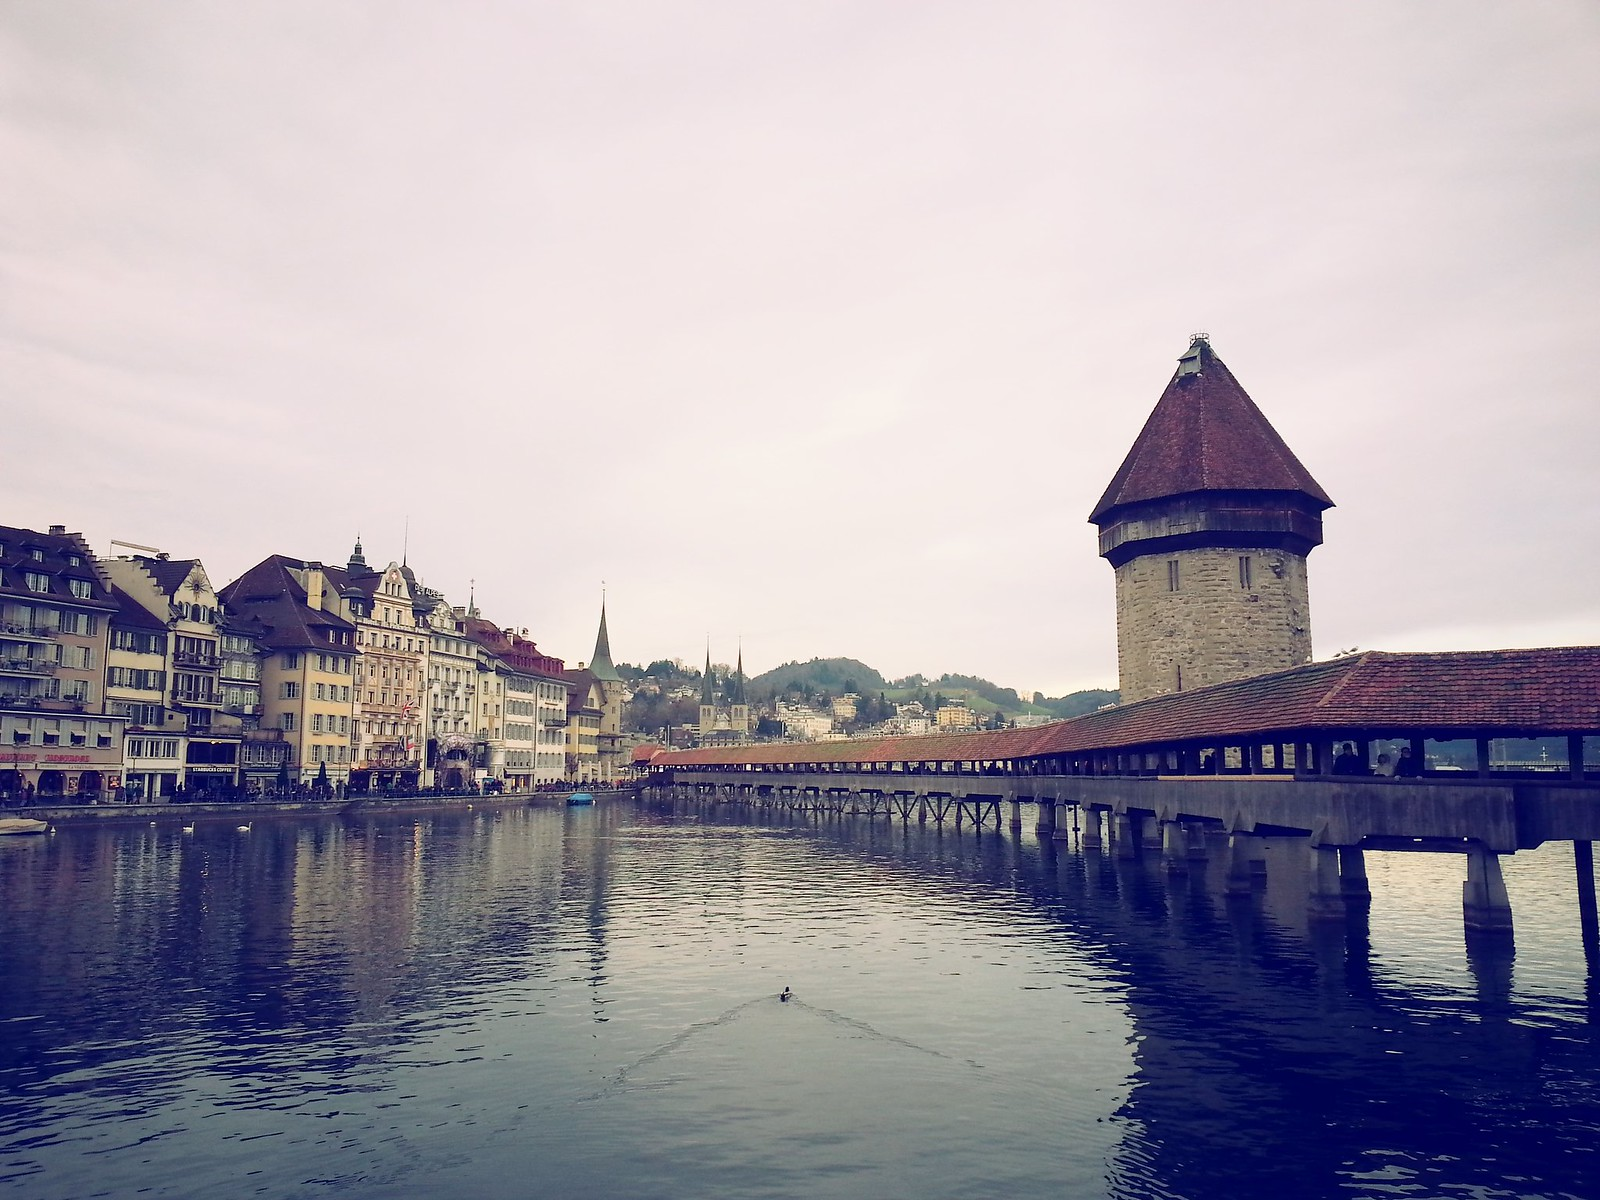 16-01-30 (Lucerne) Chapel Bridge.